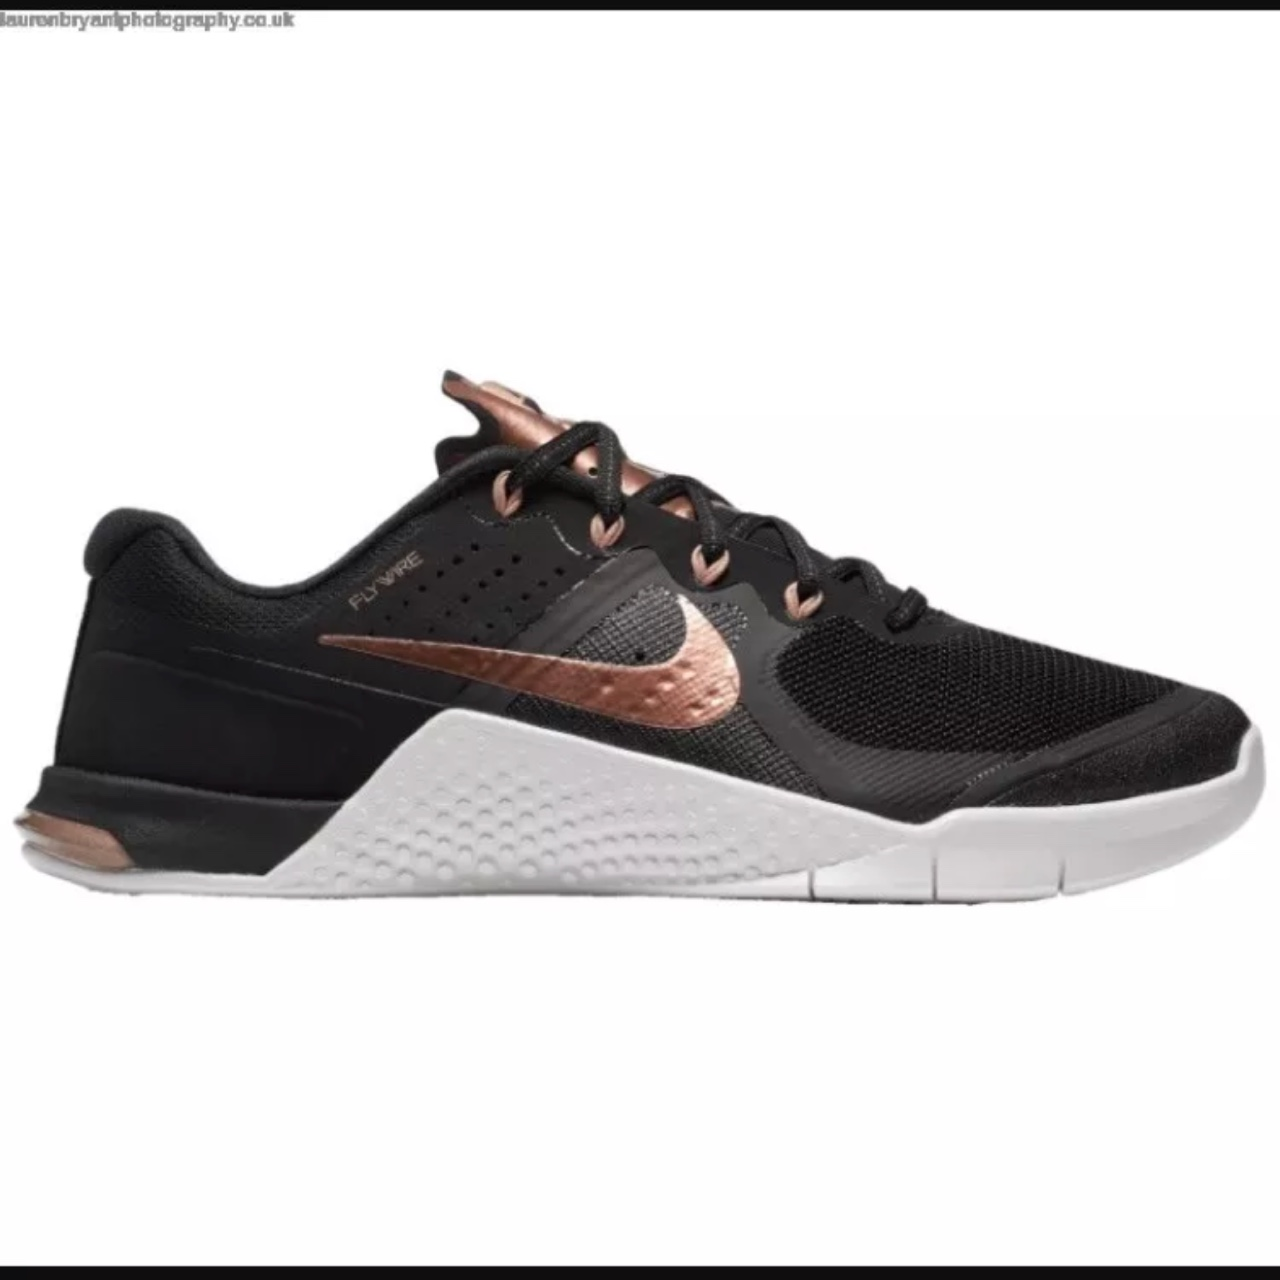 Nike Metcon 2 rose gold trainers